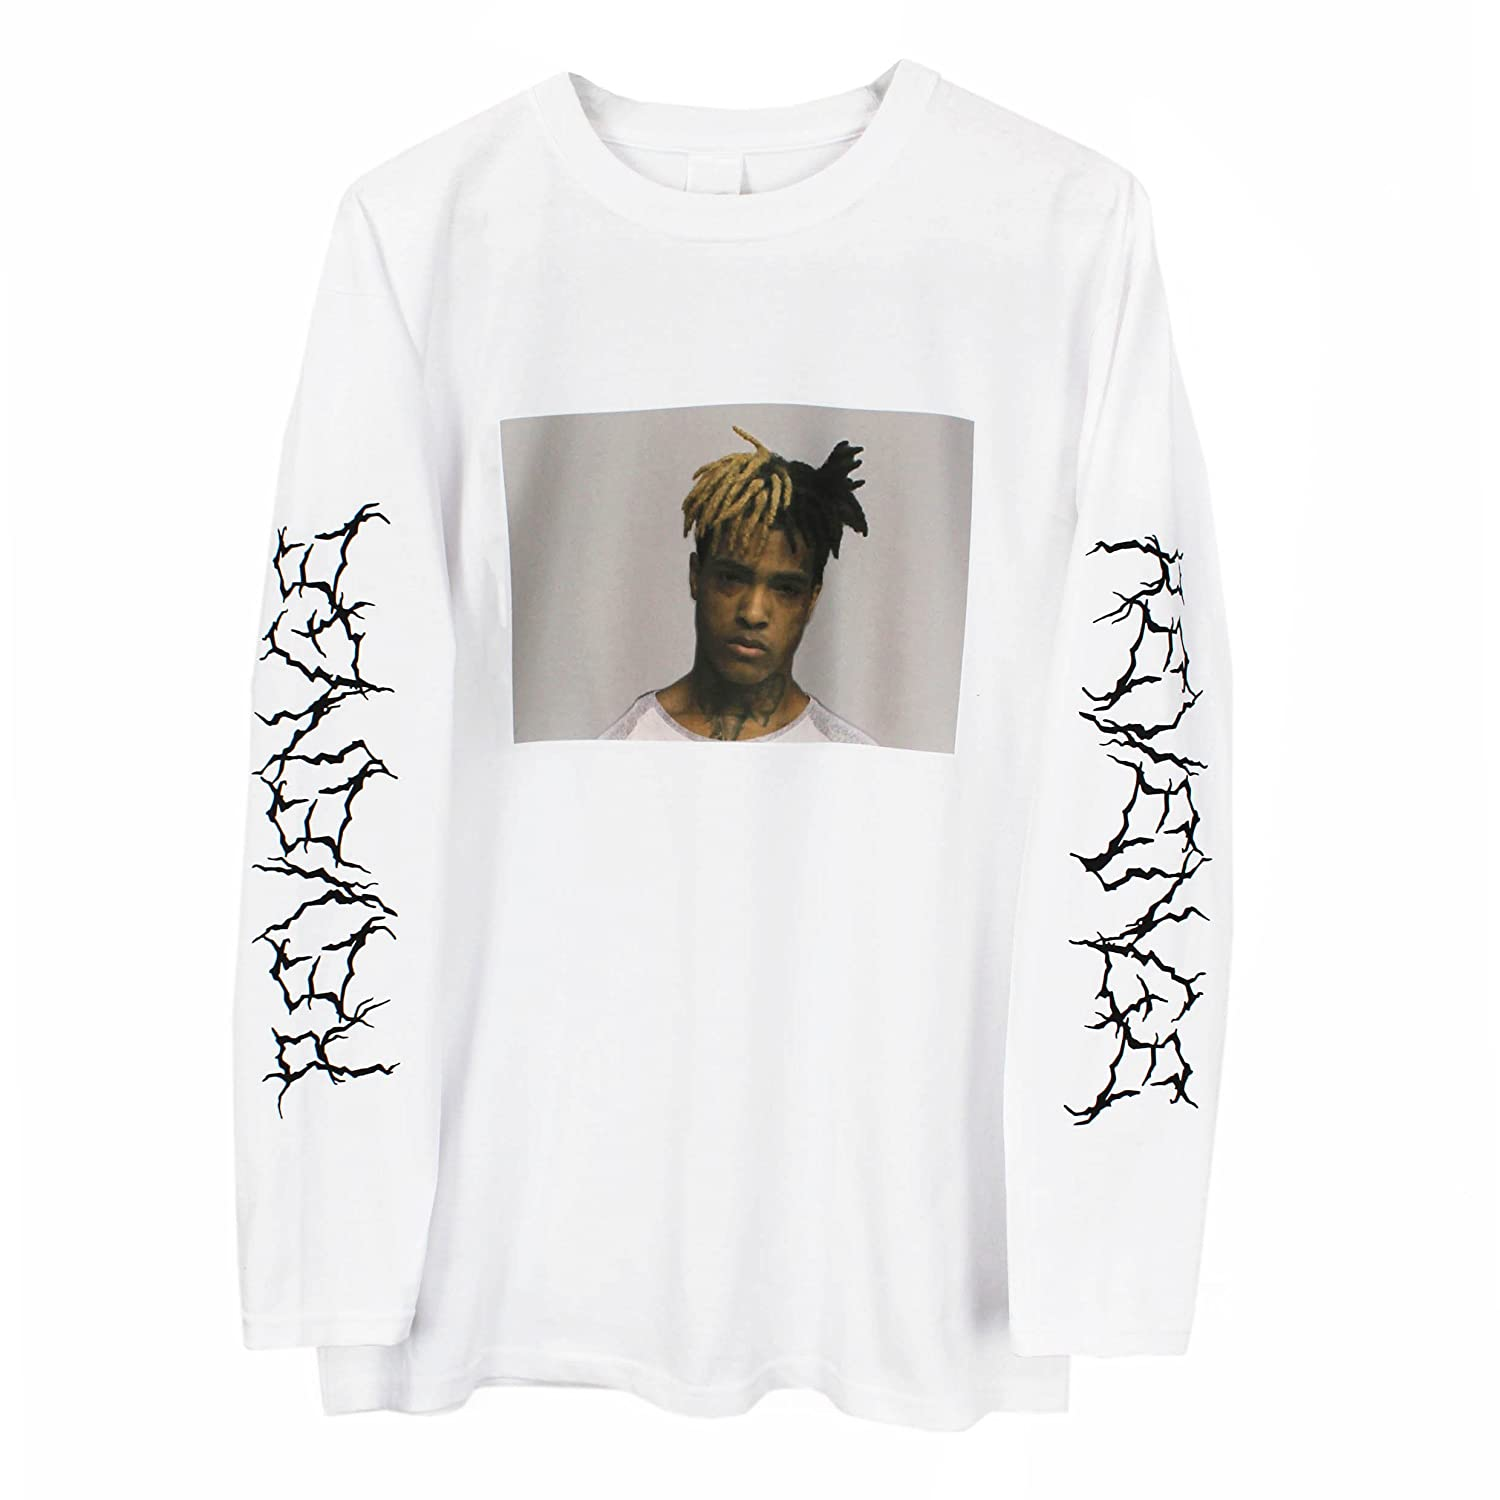 fe7ab45d2 Amazon.com: Printed Tee Xxxtentacion Long Sleeve T-Shirt: Clothing